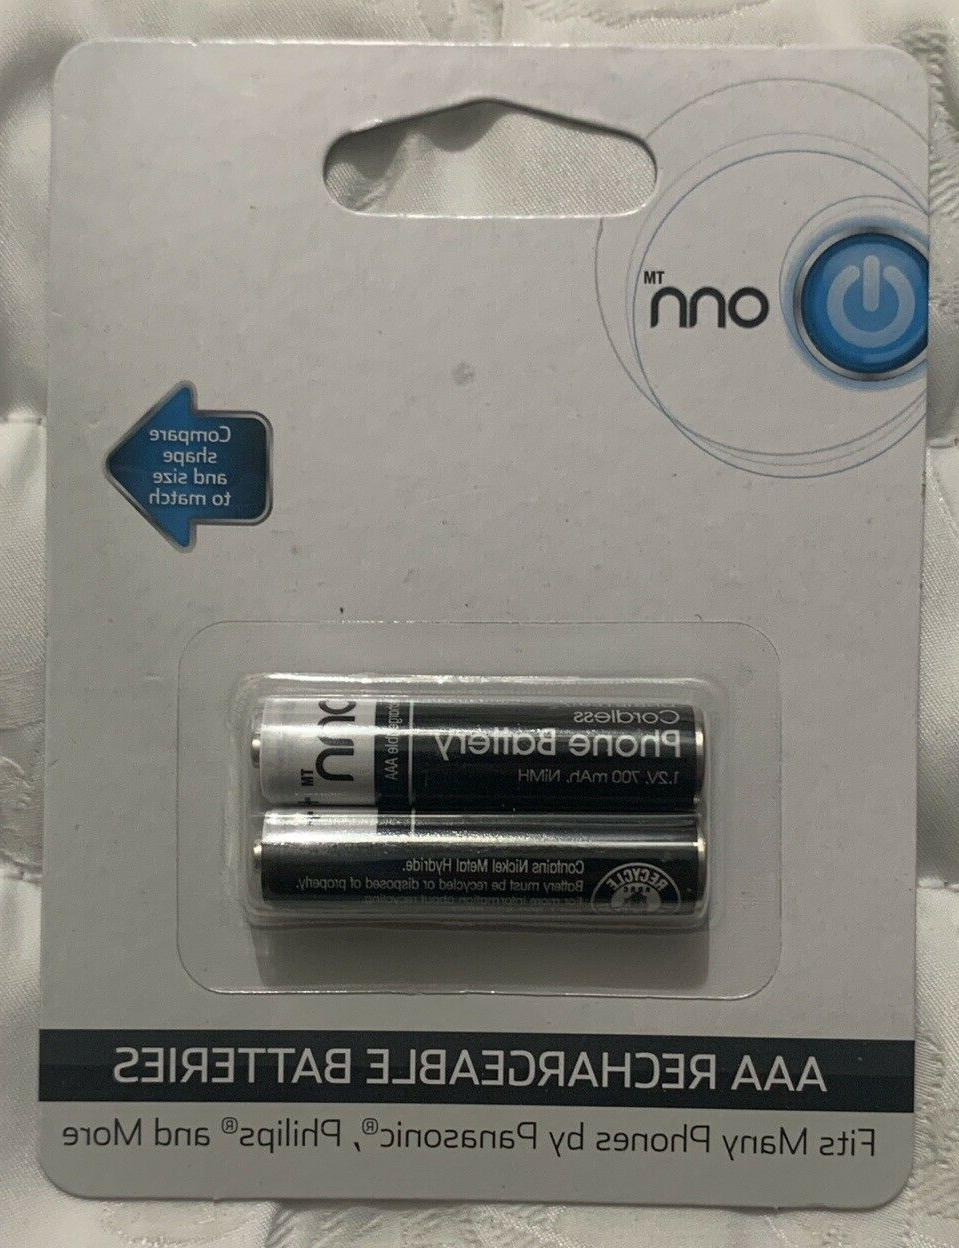 aaa rechargeable batteries 2 pack fits many